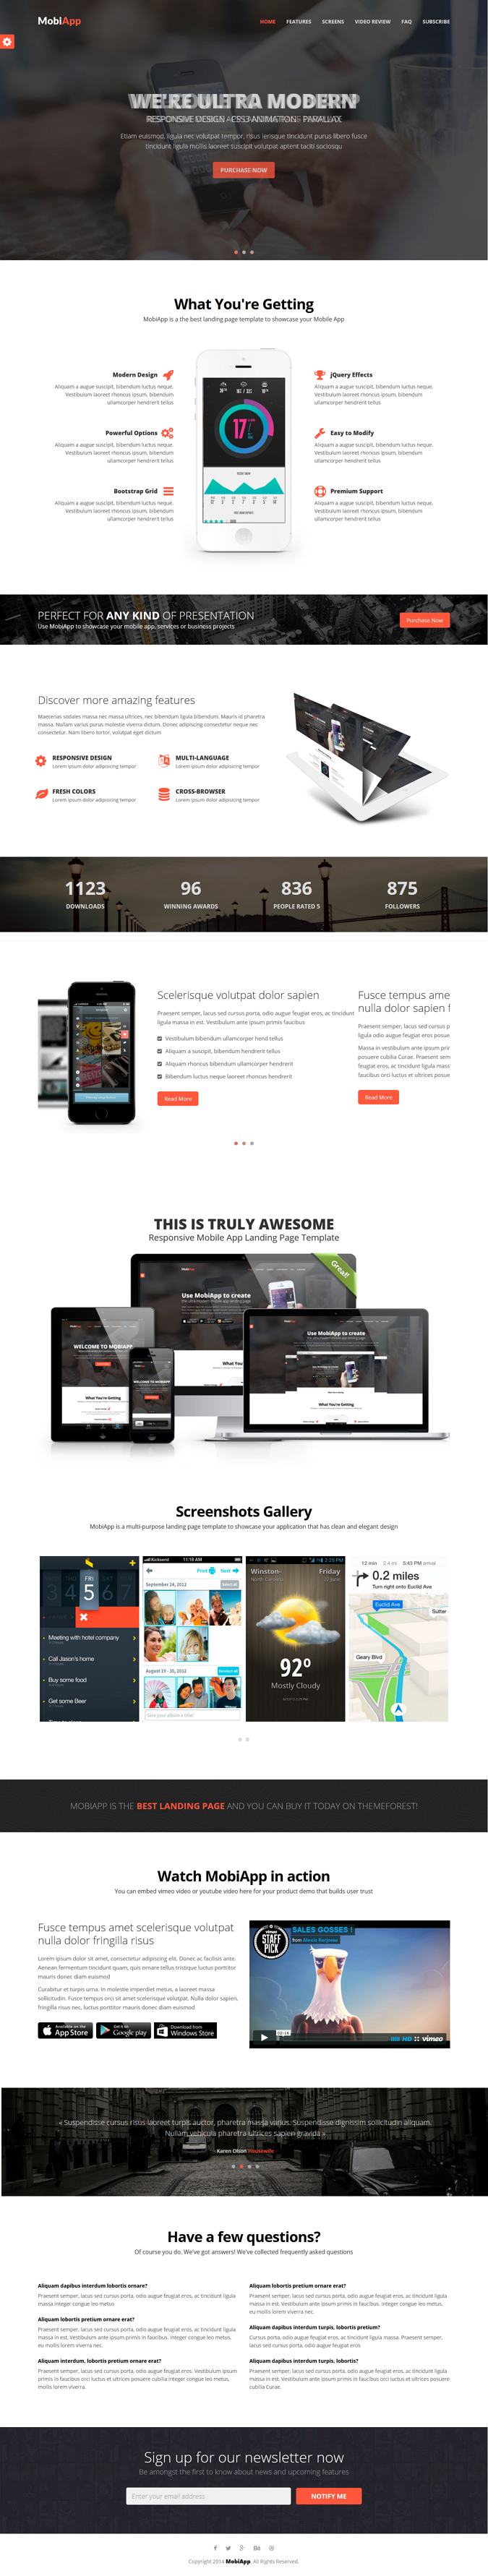 MobiApp is a cool and creative responsive mobile app landing page. You can use it as showcase of ...